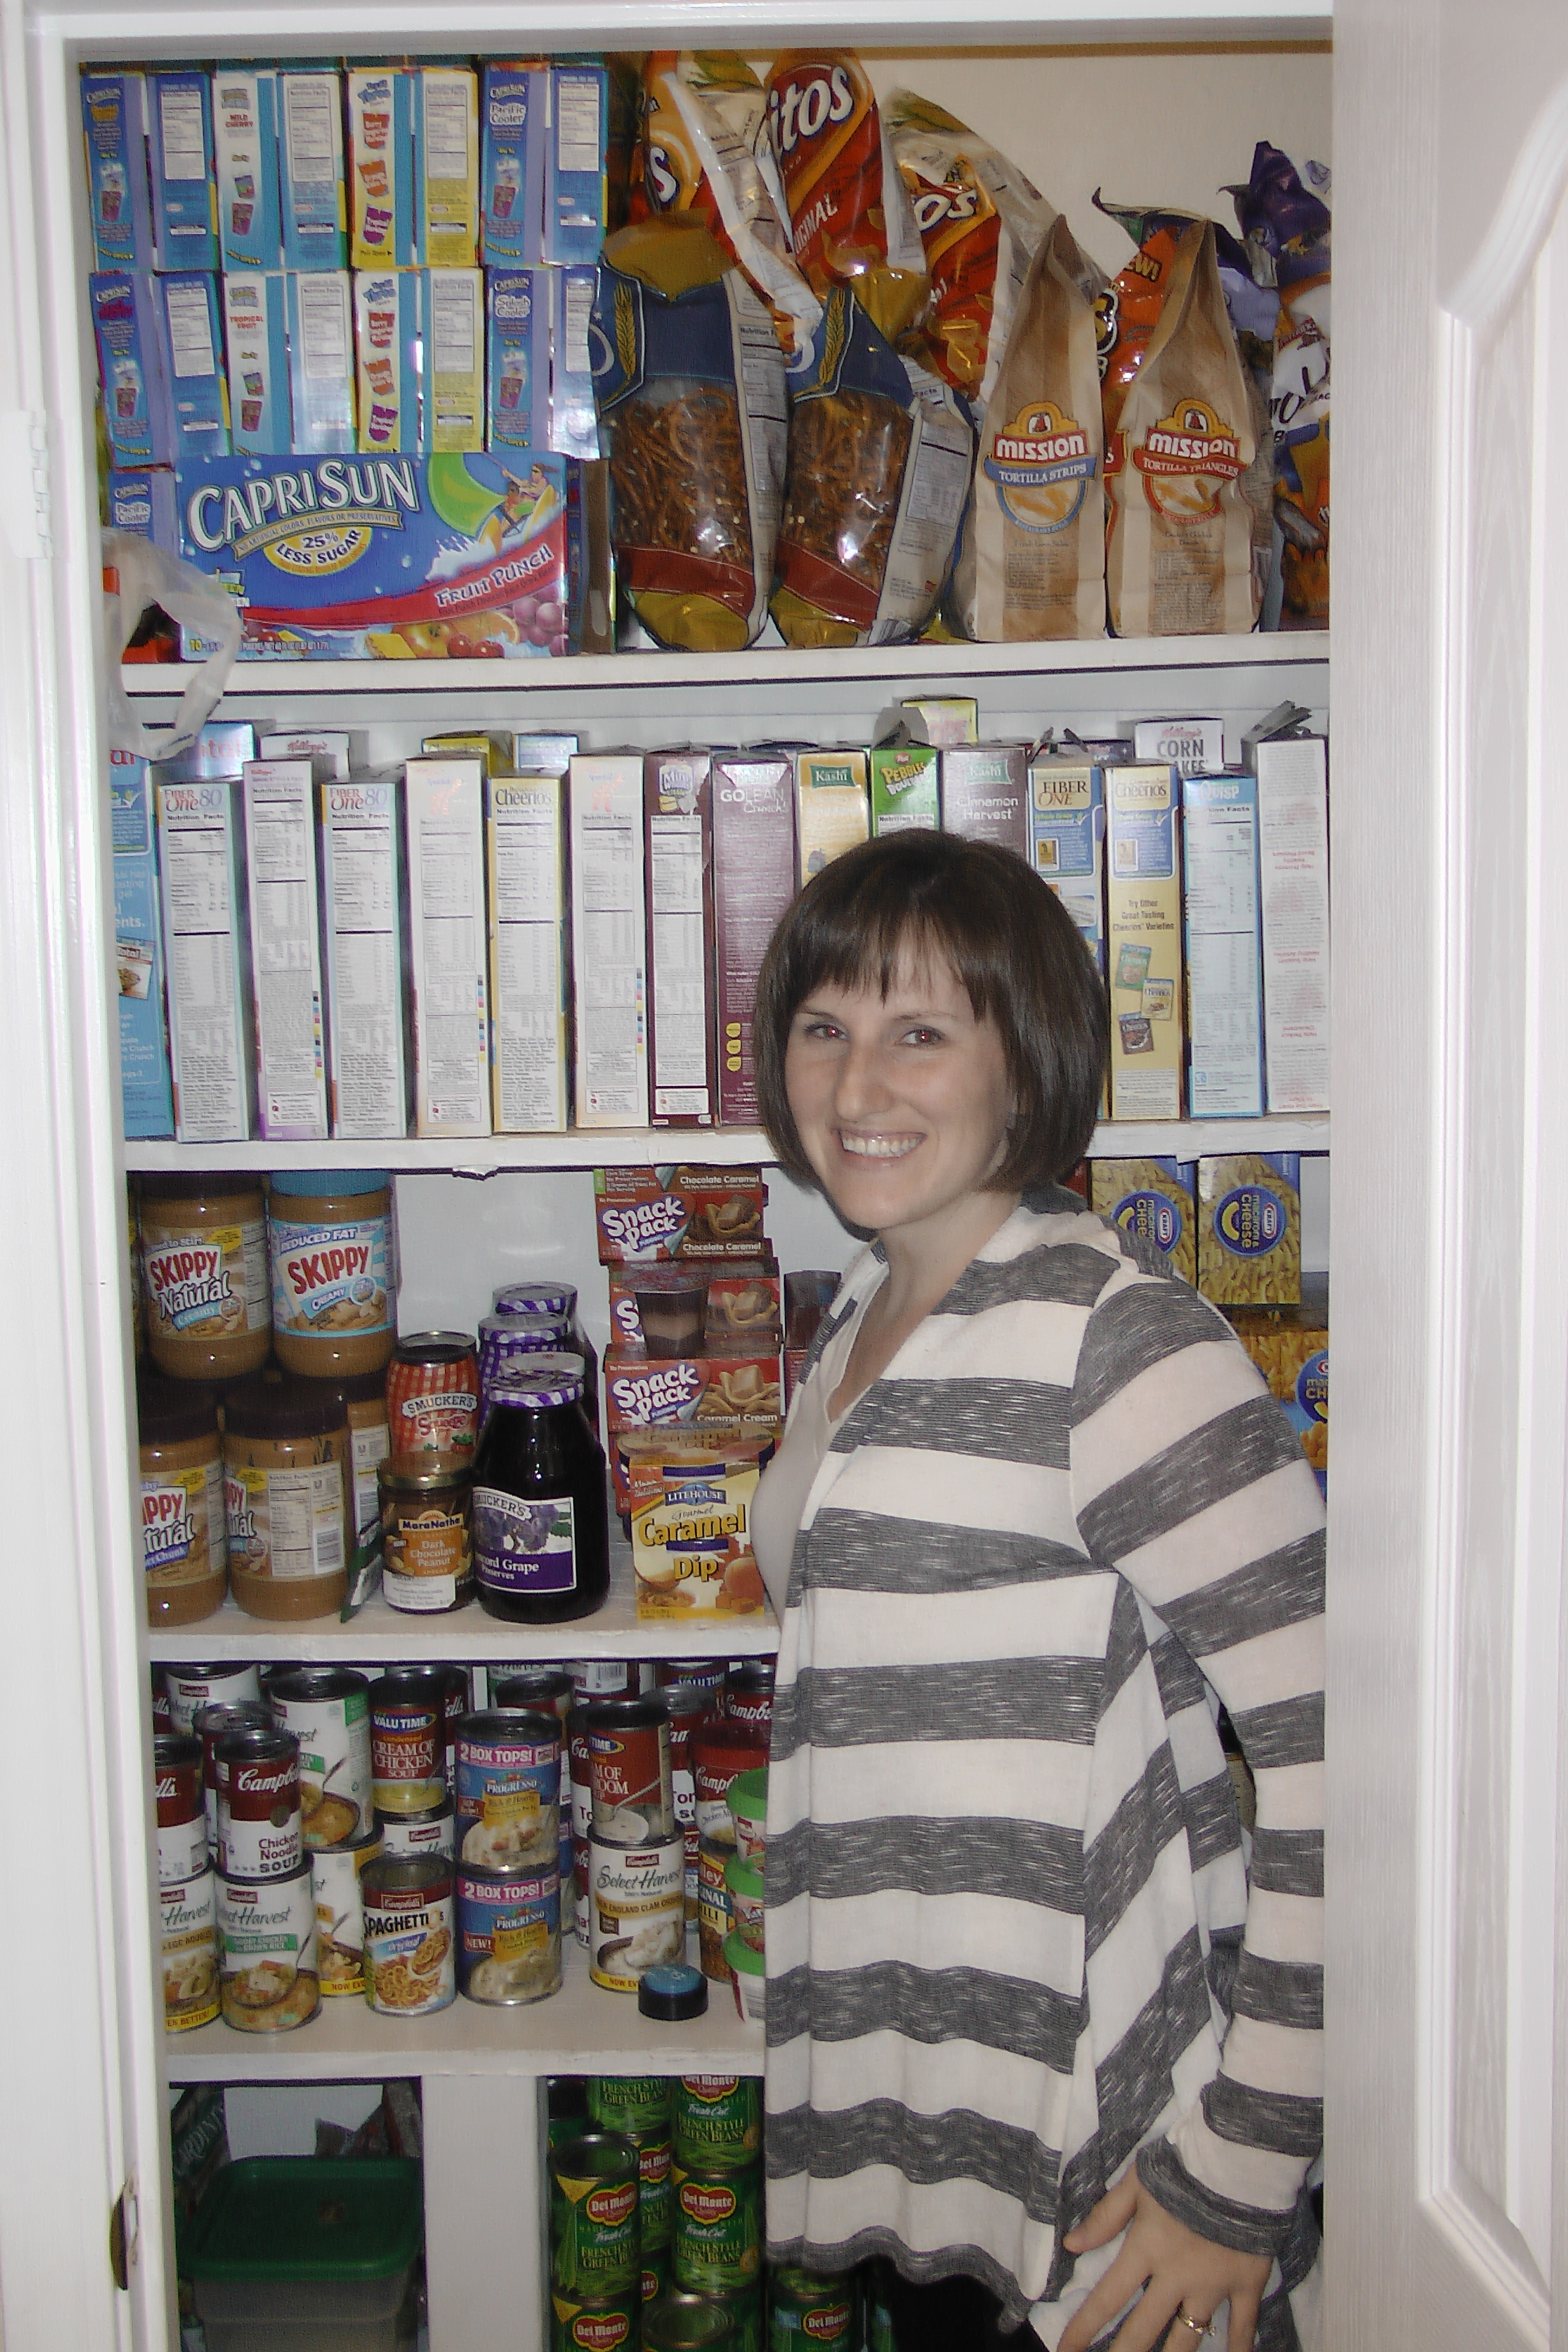 Building Up Food Storage and Planning for Emergencies